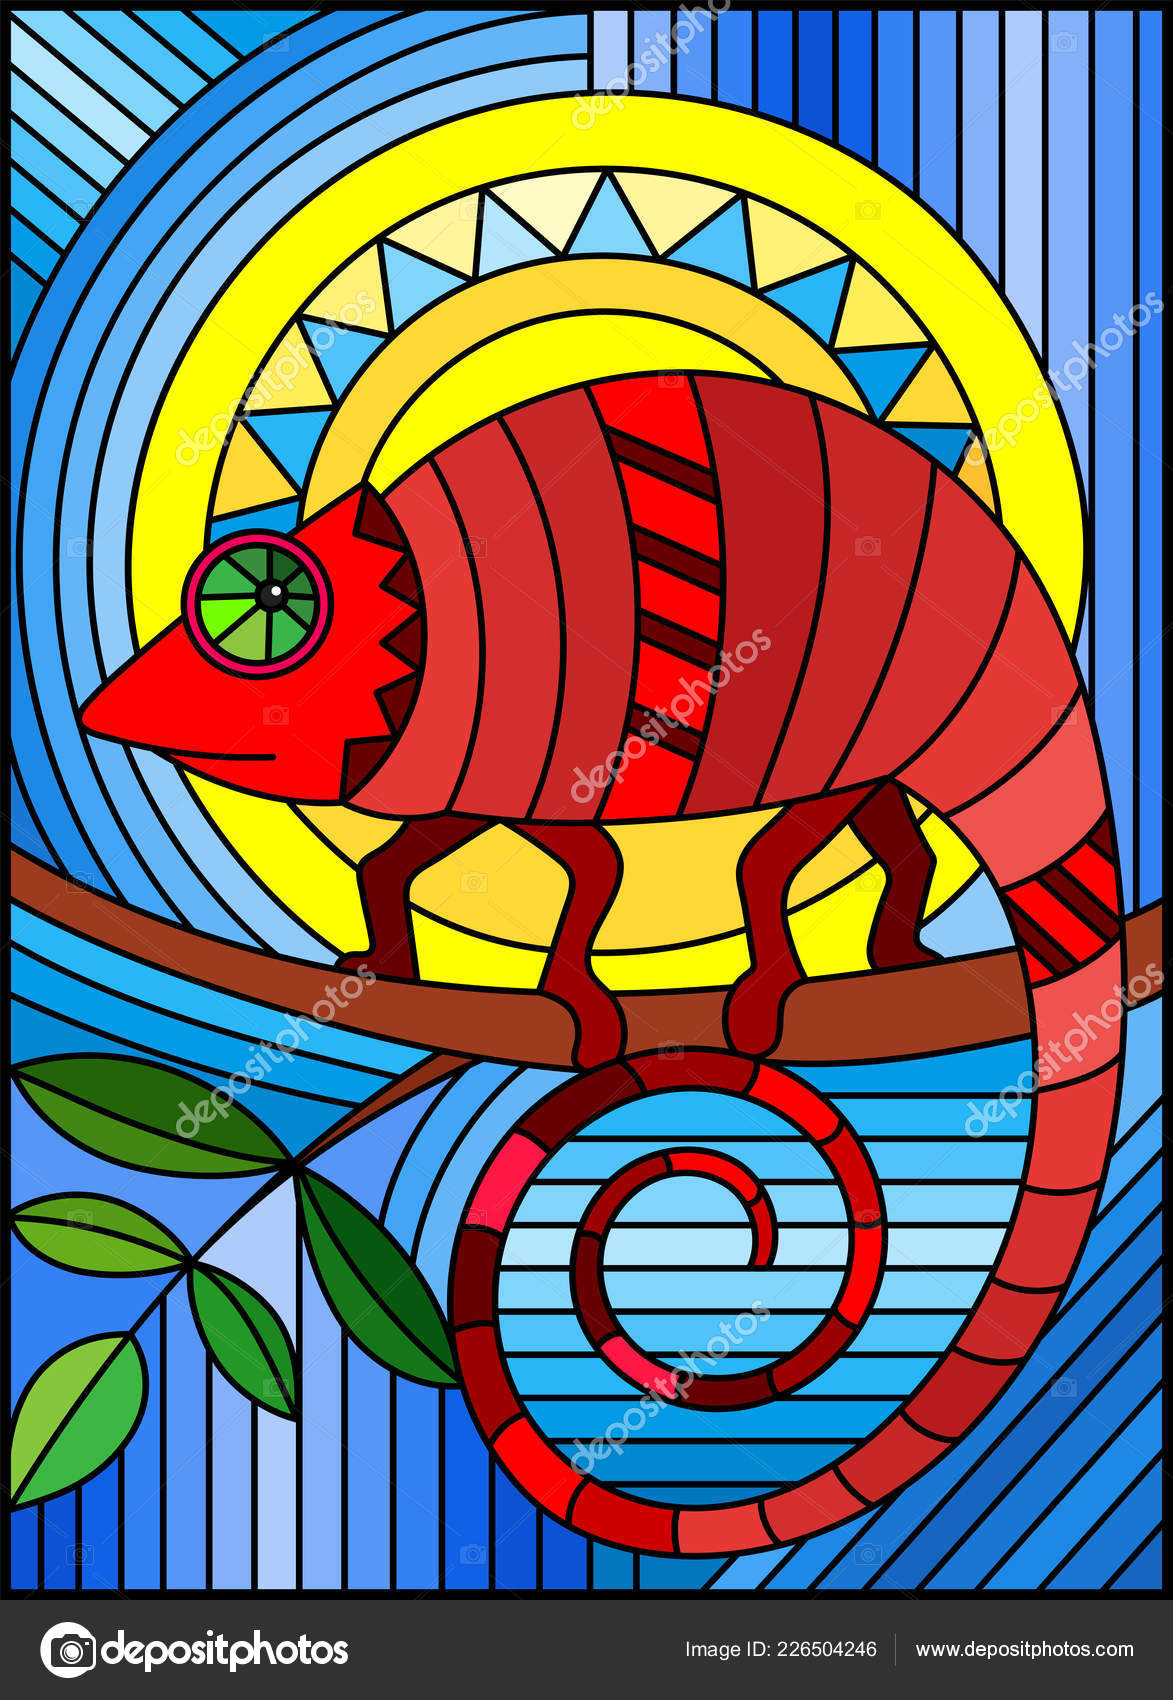 Chameleon Style Illustration Stained Glass Style Abstract Geometric Red Chameleon